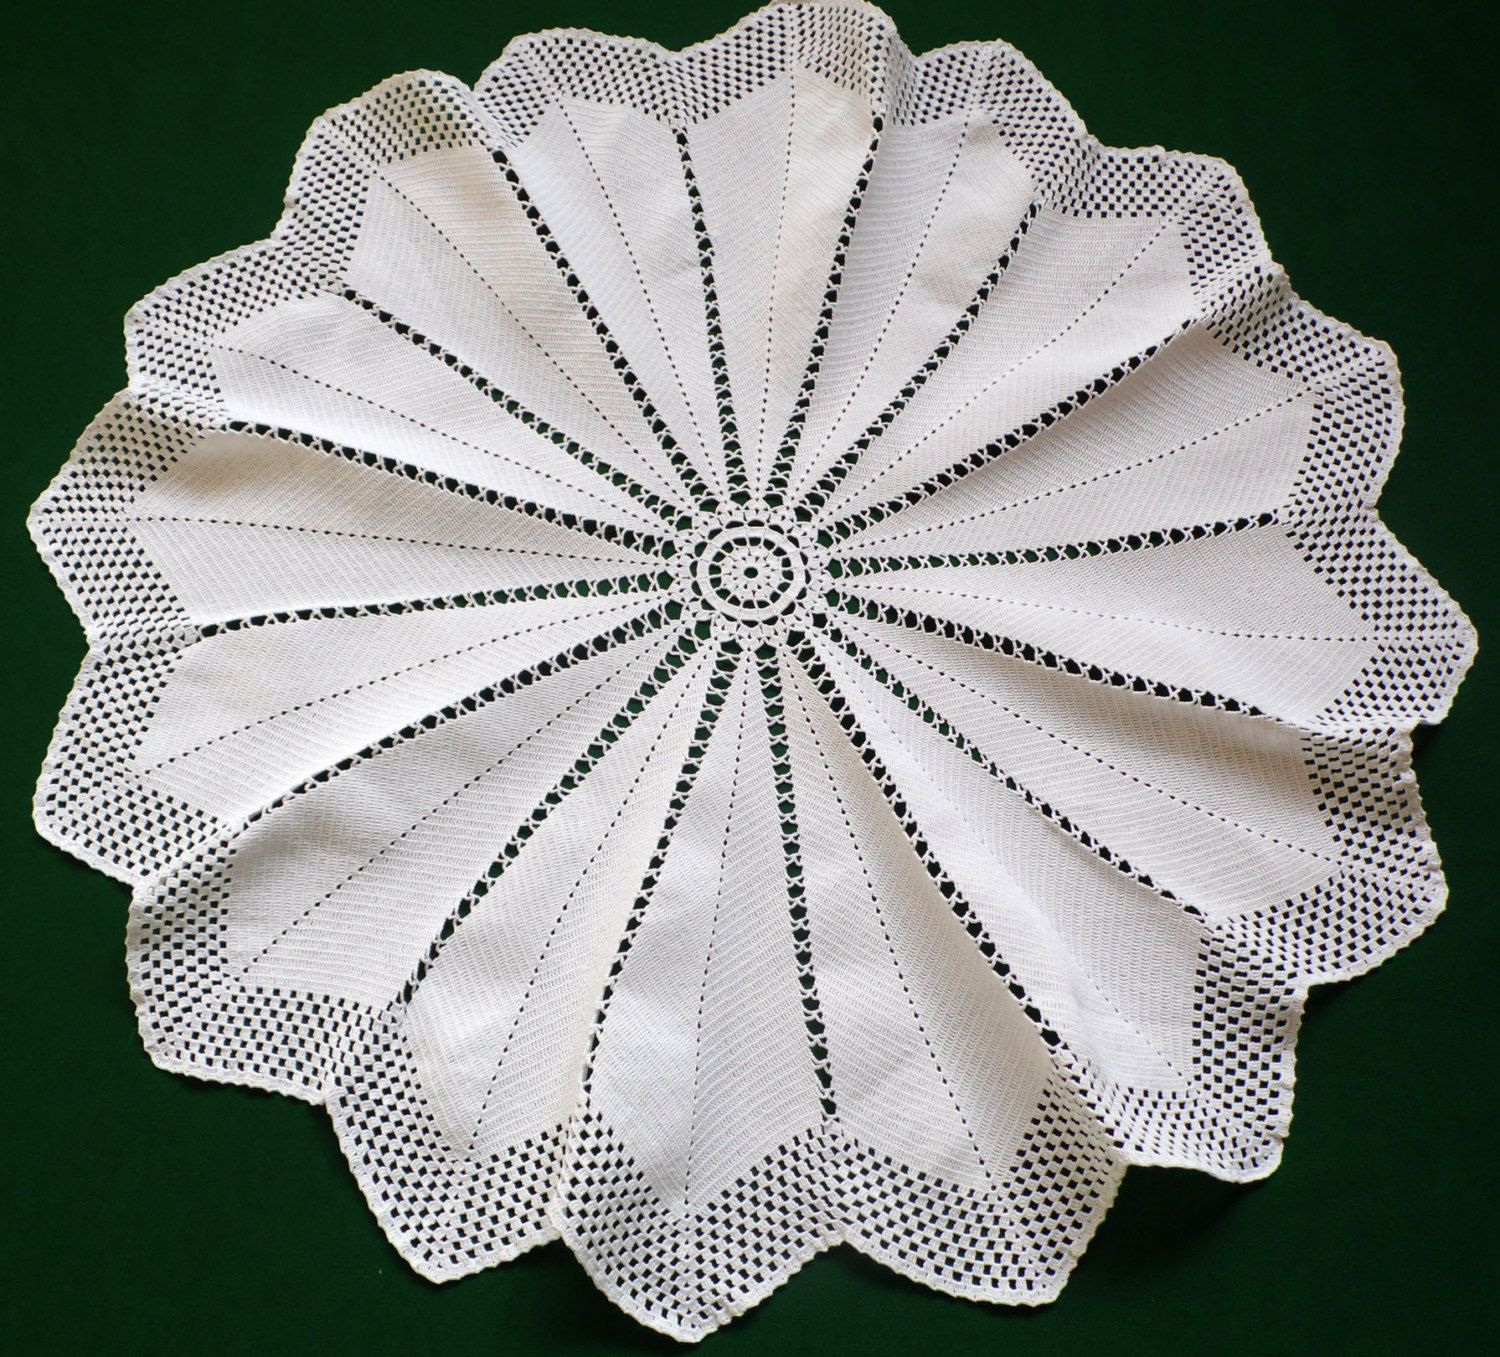 Vintage cotton white Crocheted Round star Doily crochet table ...